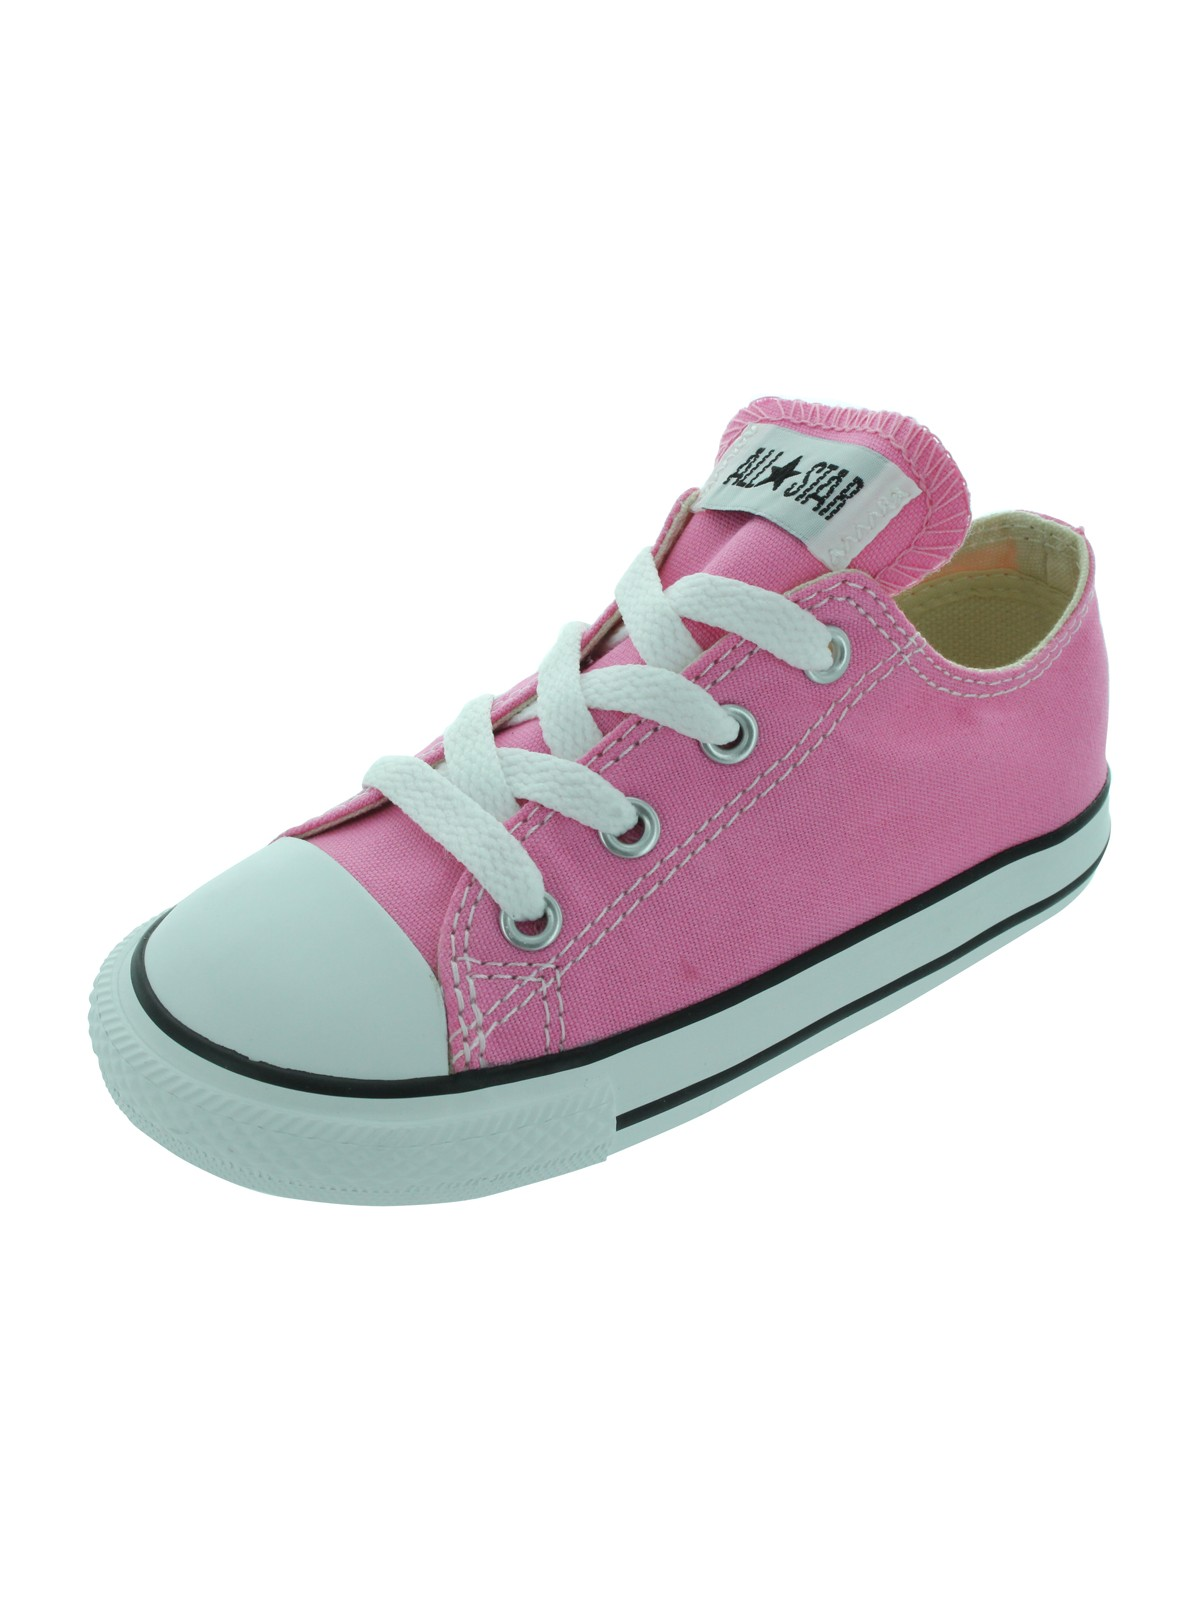 CONVERSE INF C/T A/S OX INFANTS CASUAL SHOES